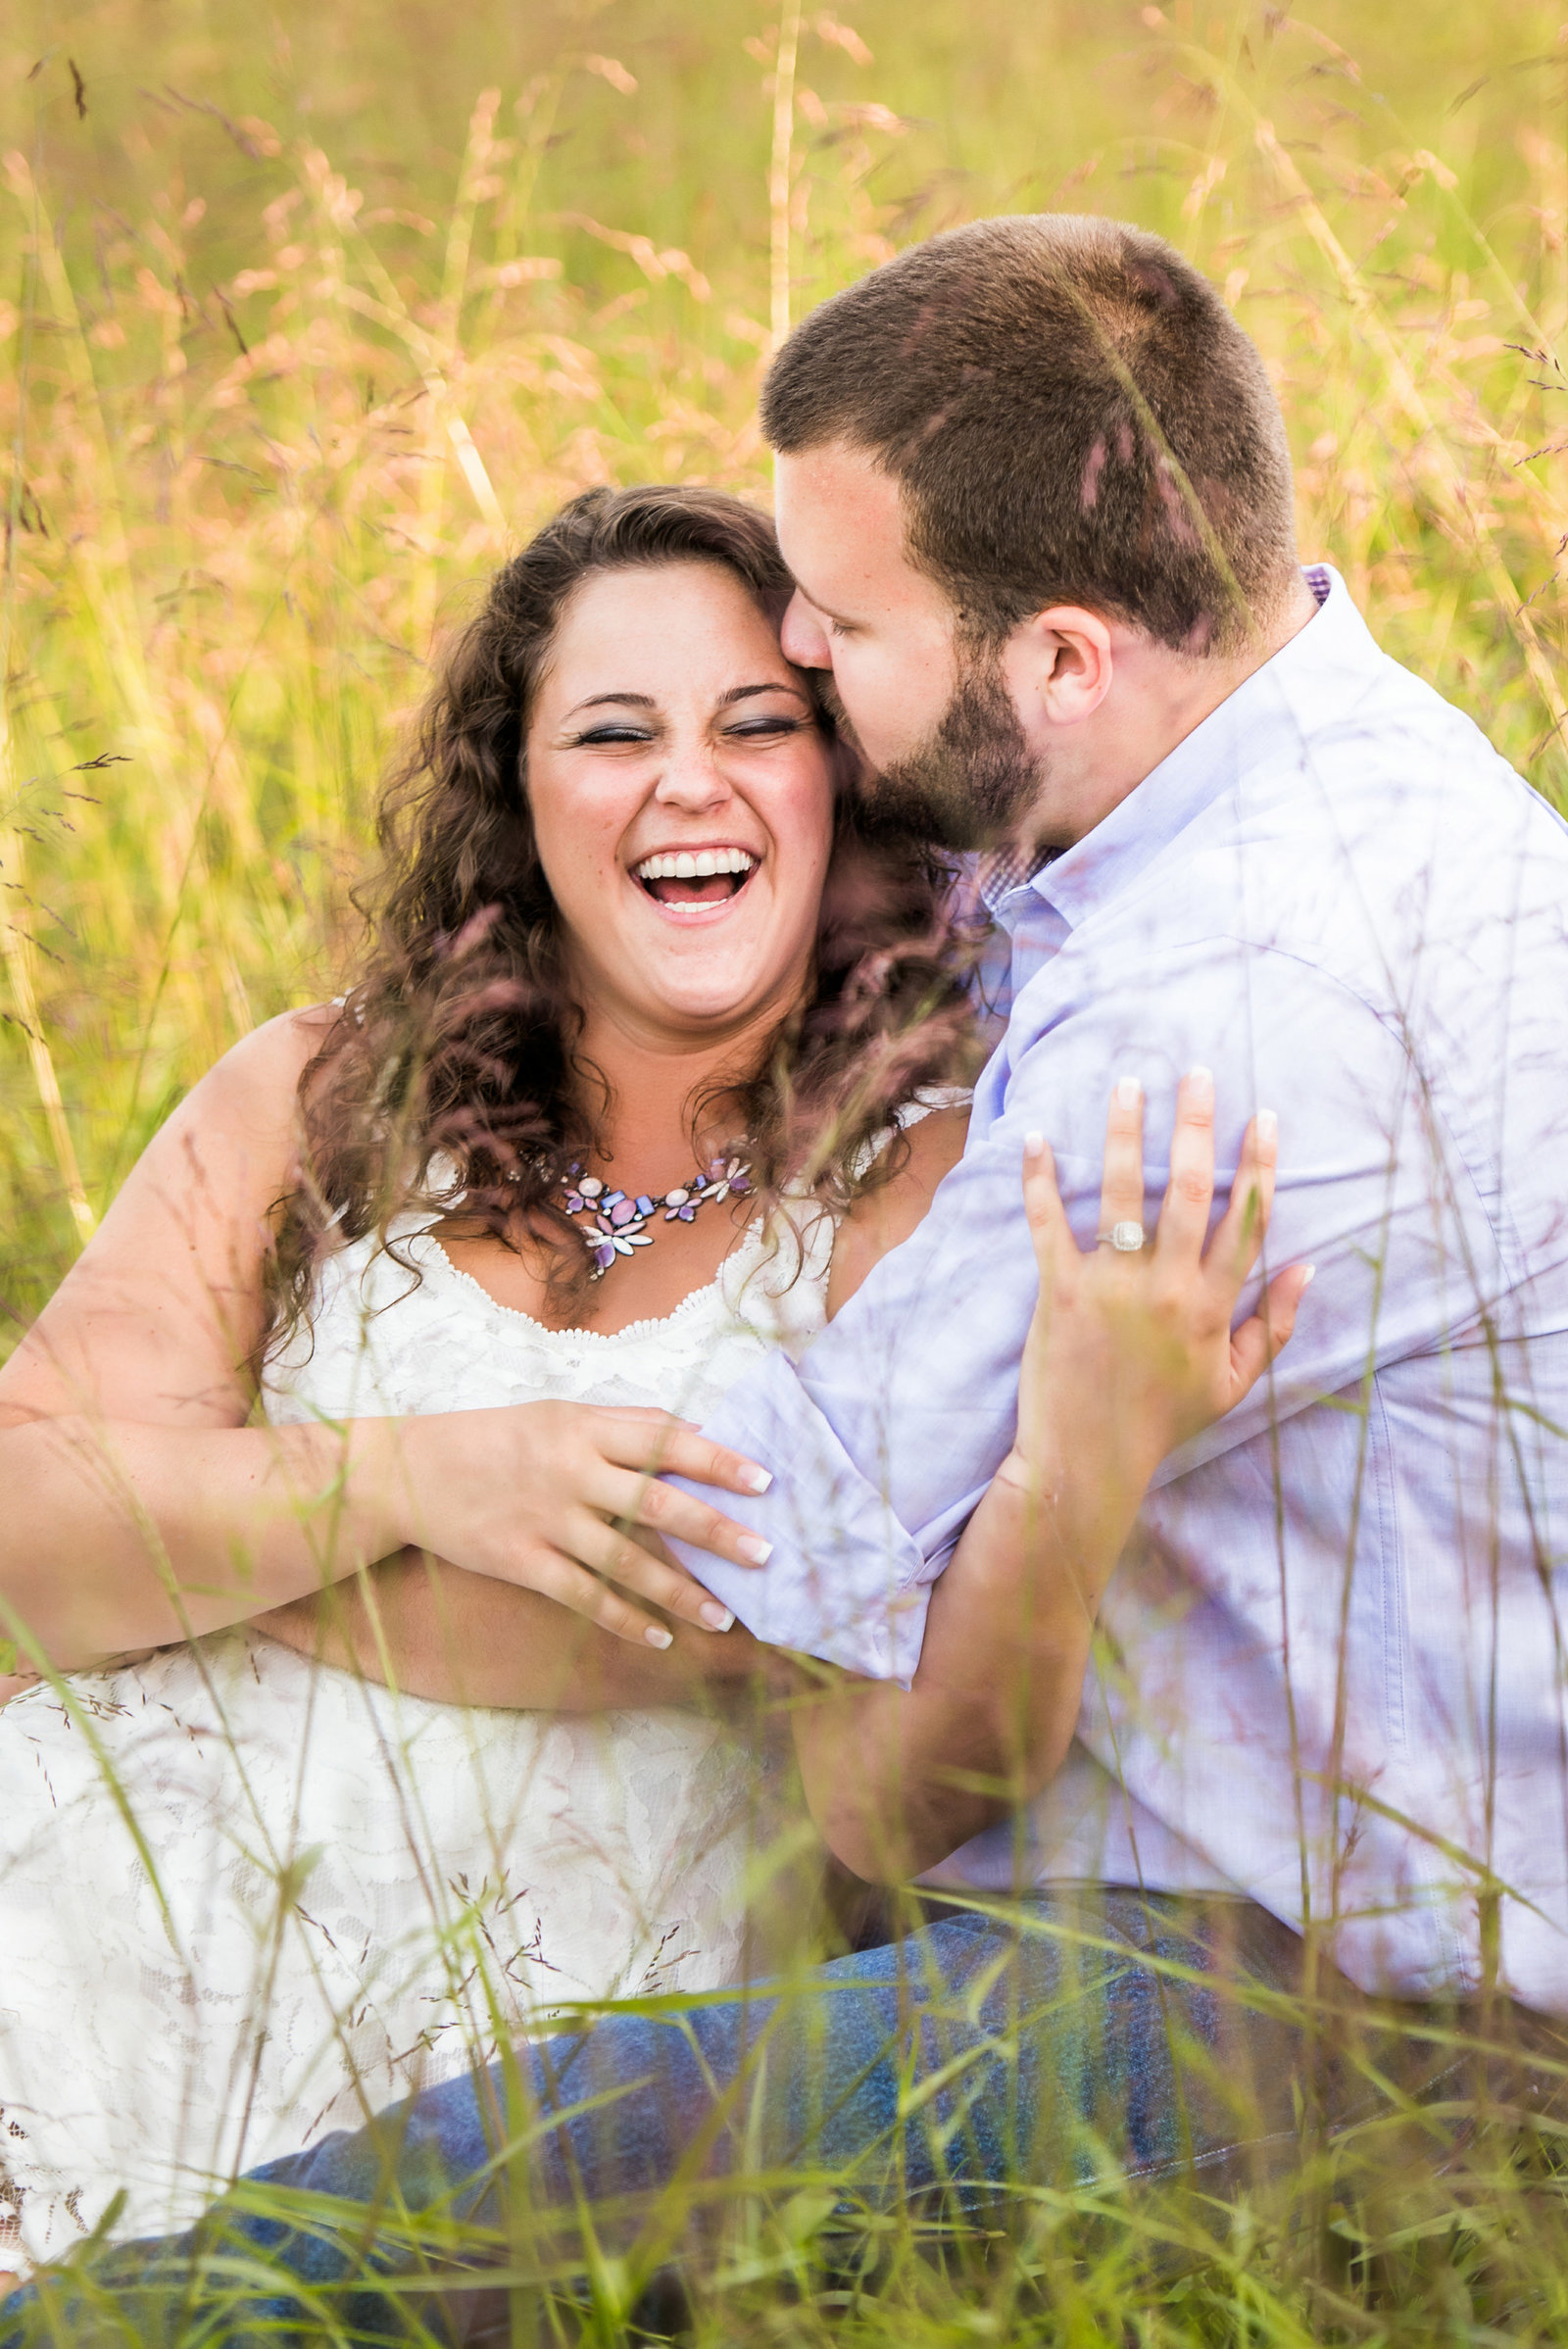 NJ_Rustic_Engagement_Photography025